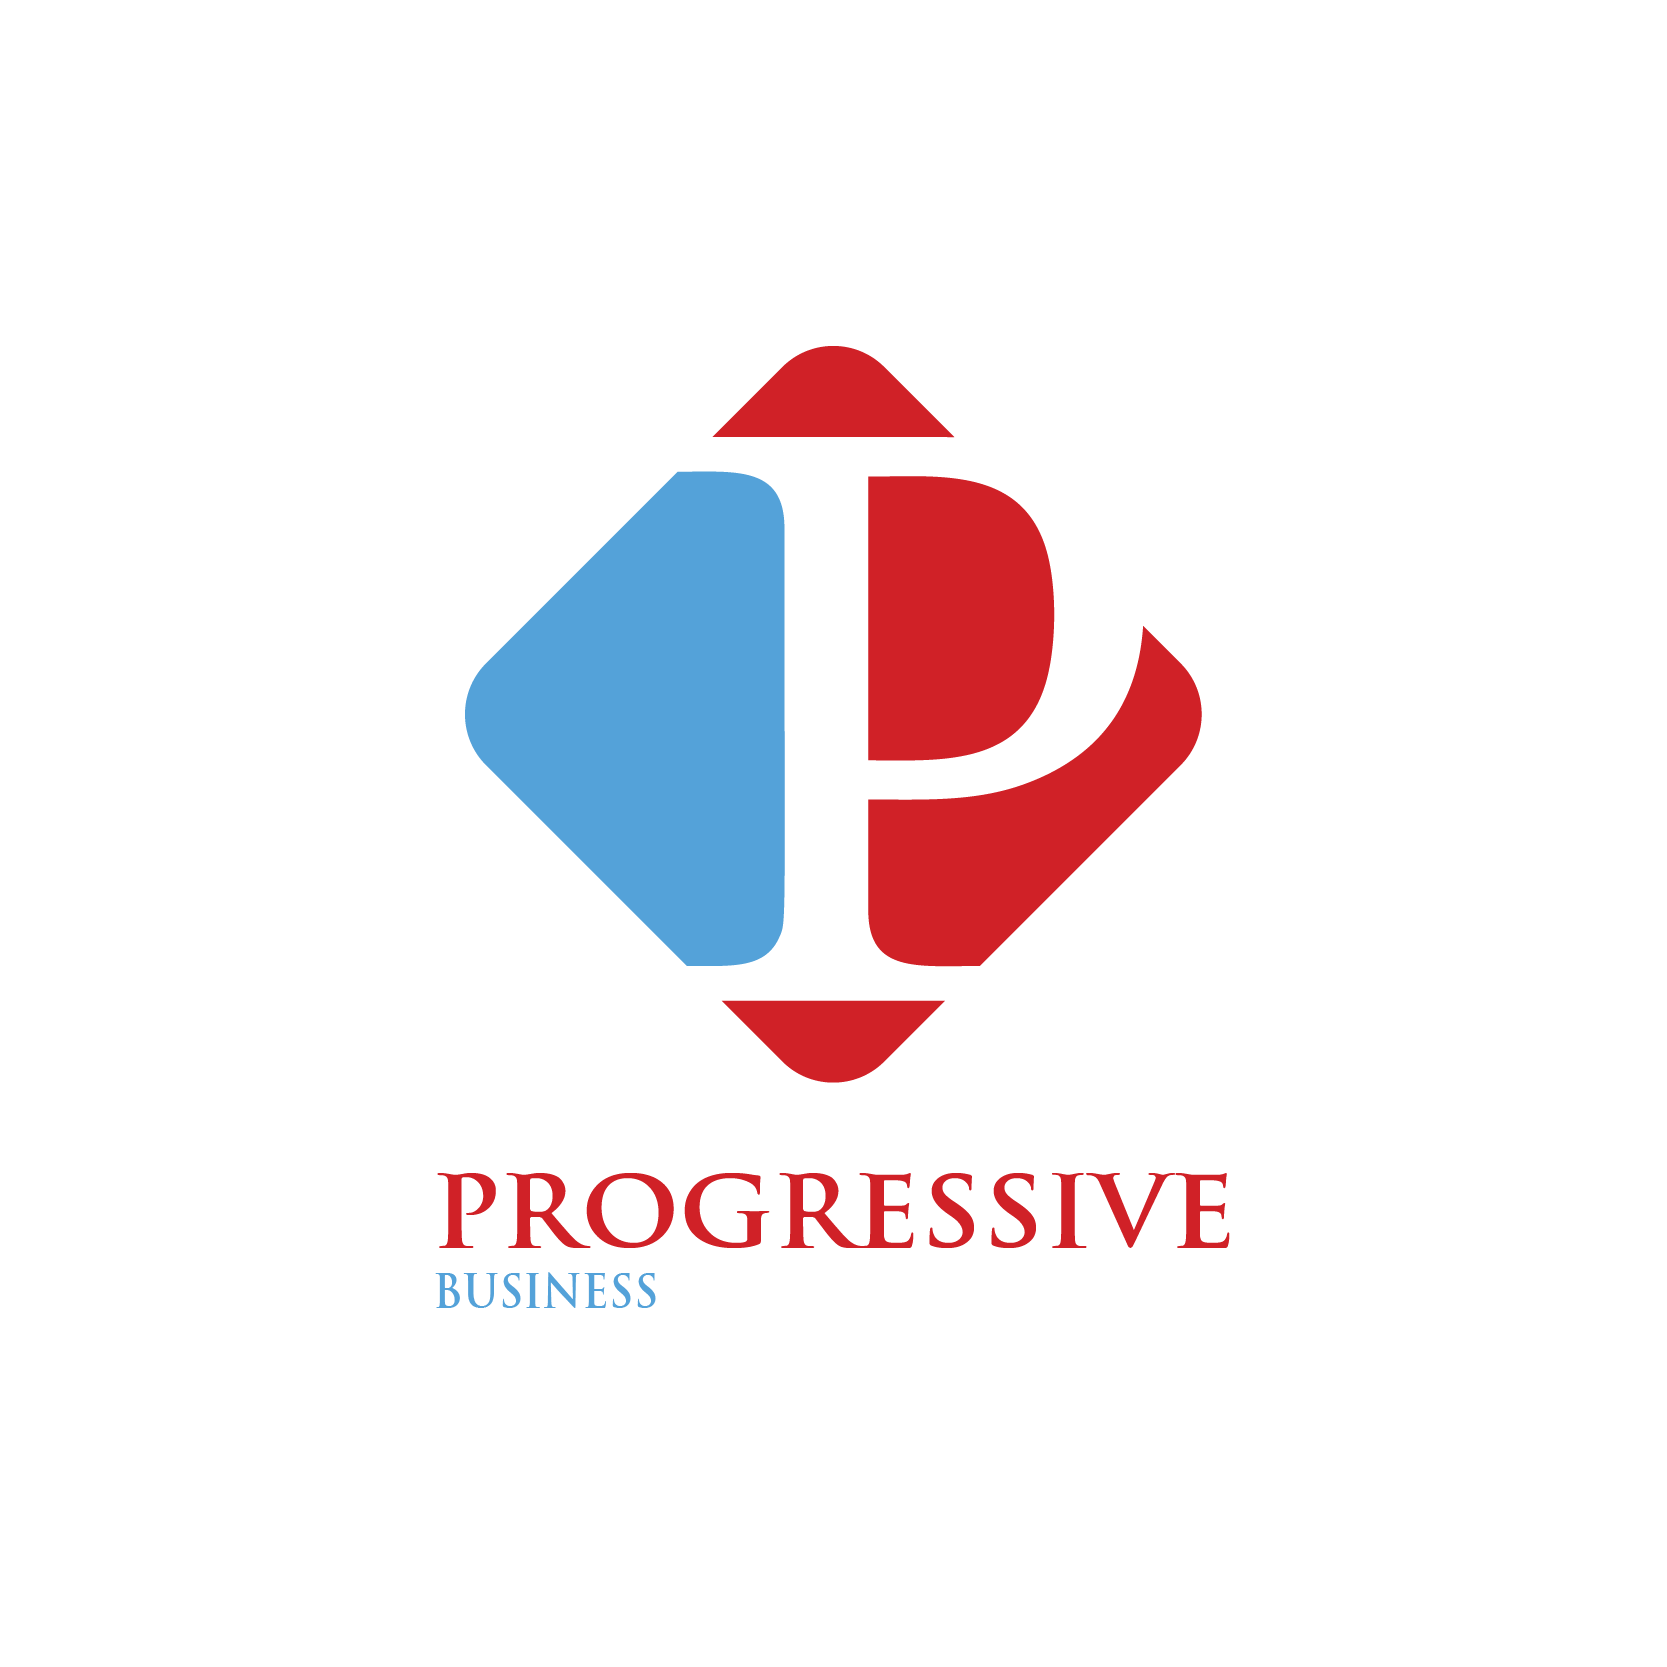 Logo Design by Muhammad Noor - Entry No. 216 in the Logo Design Contest Captivating Logo Design for Progressive Business.